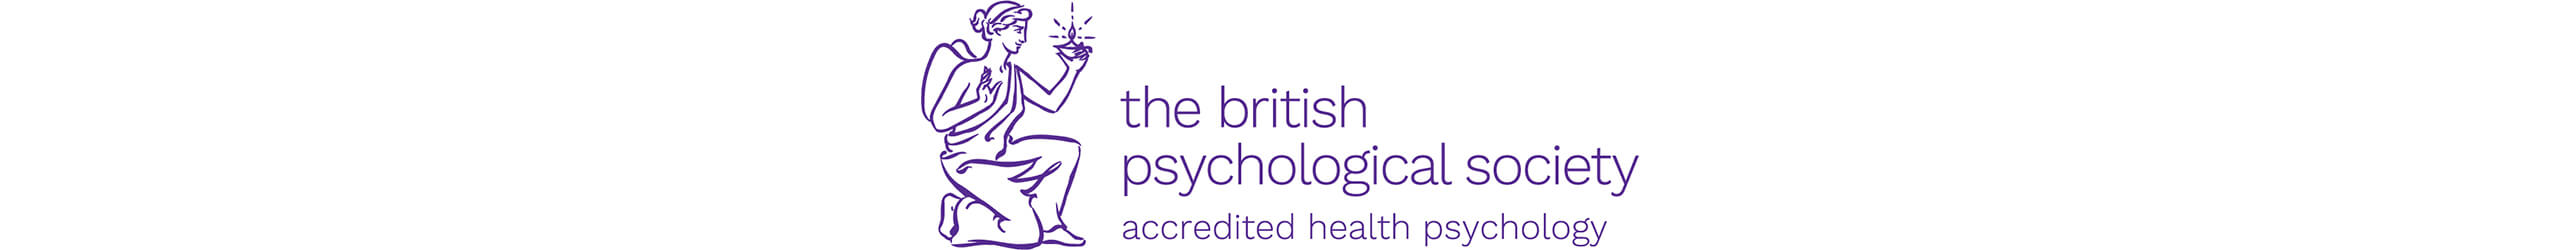 The British Psychological Society Accredited Health Psychology logo